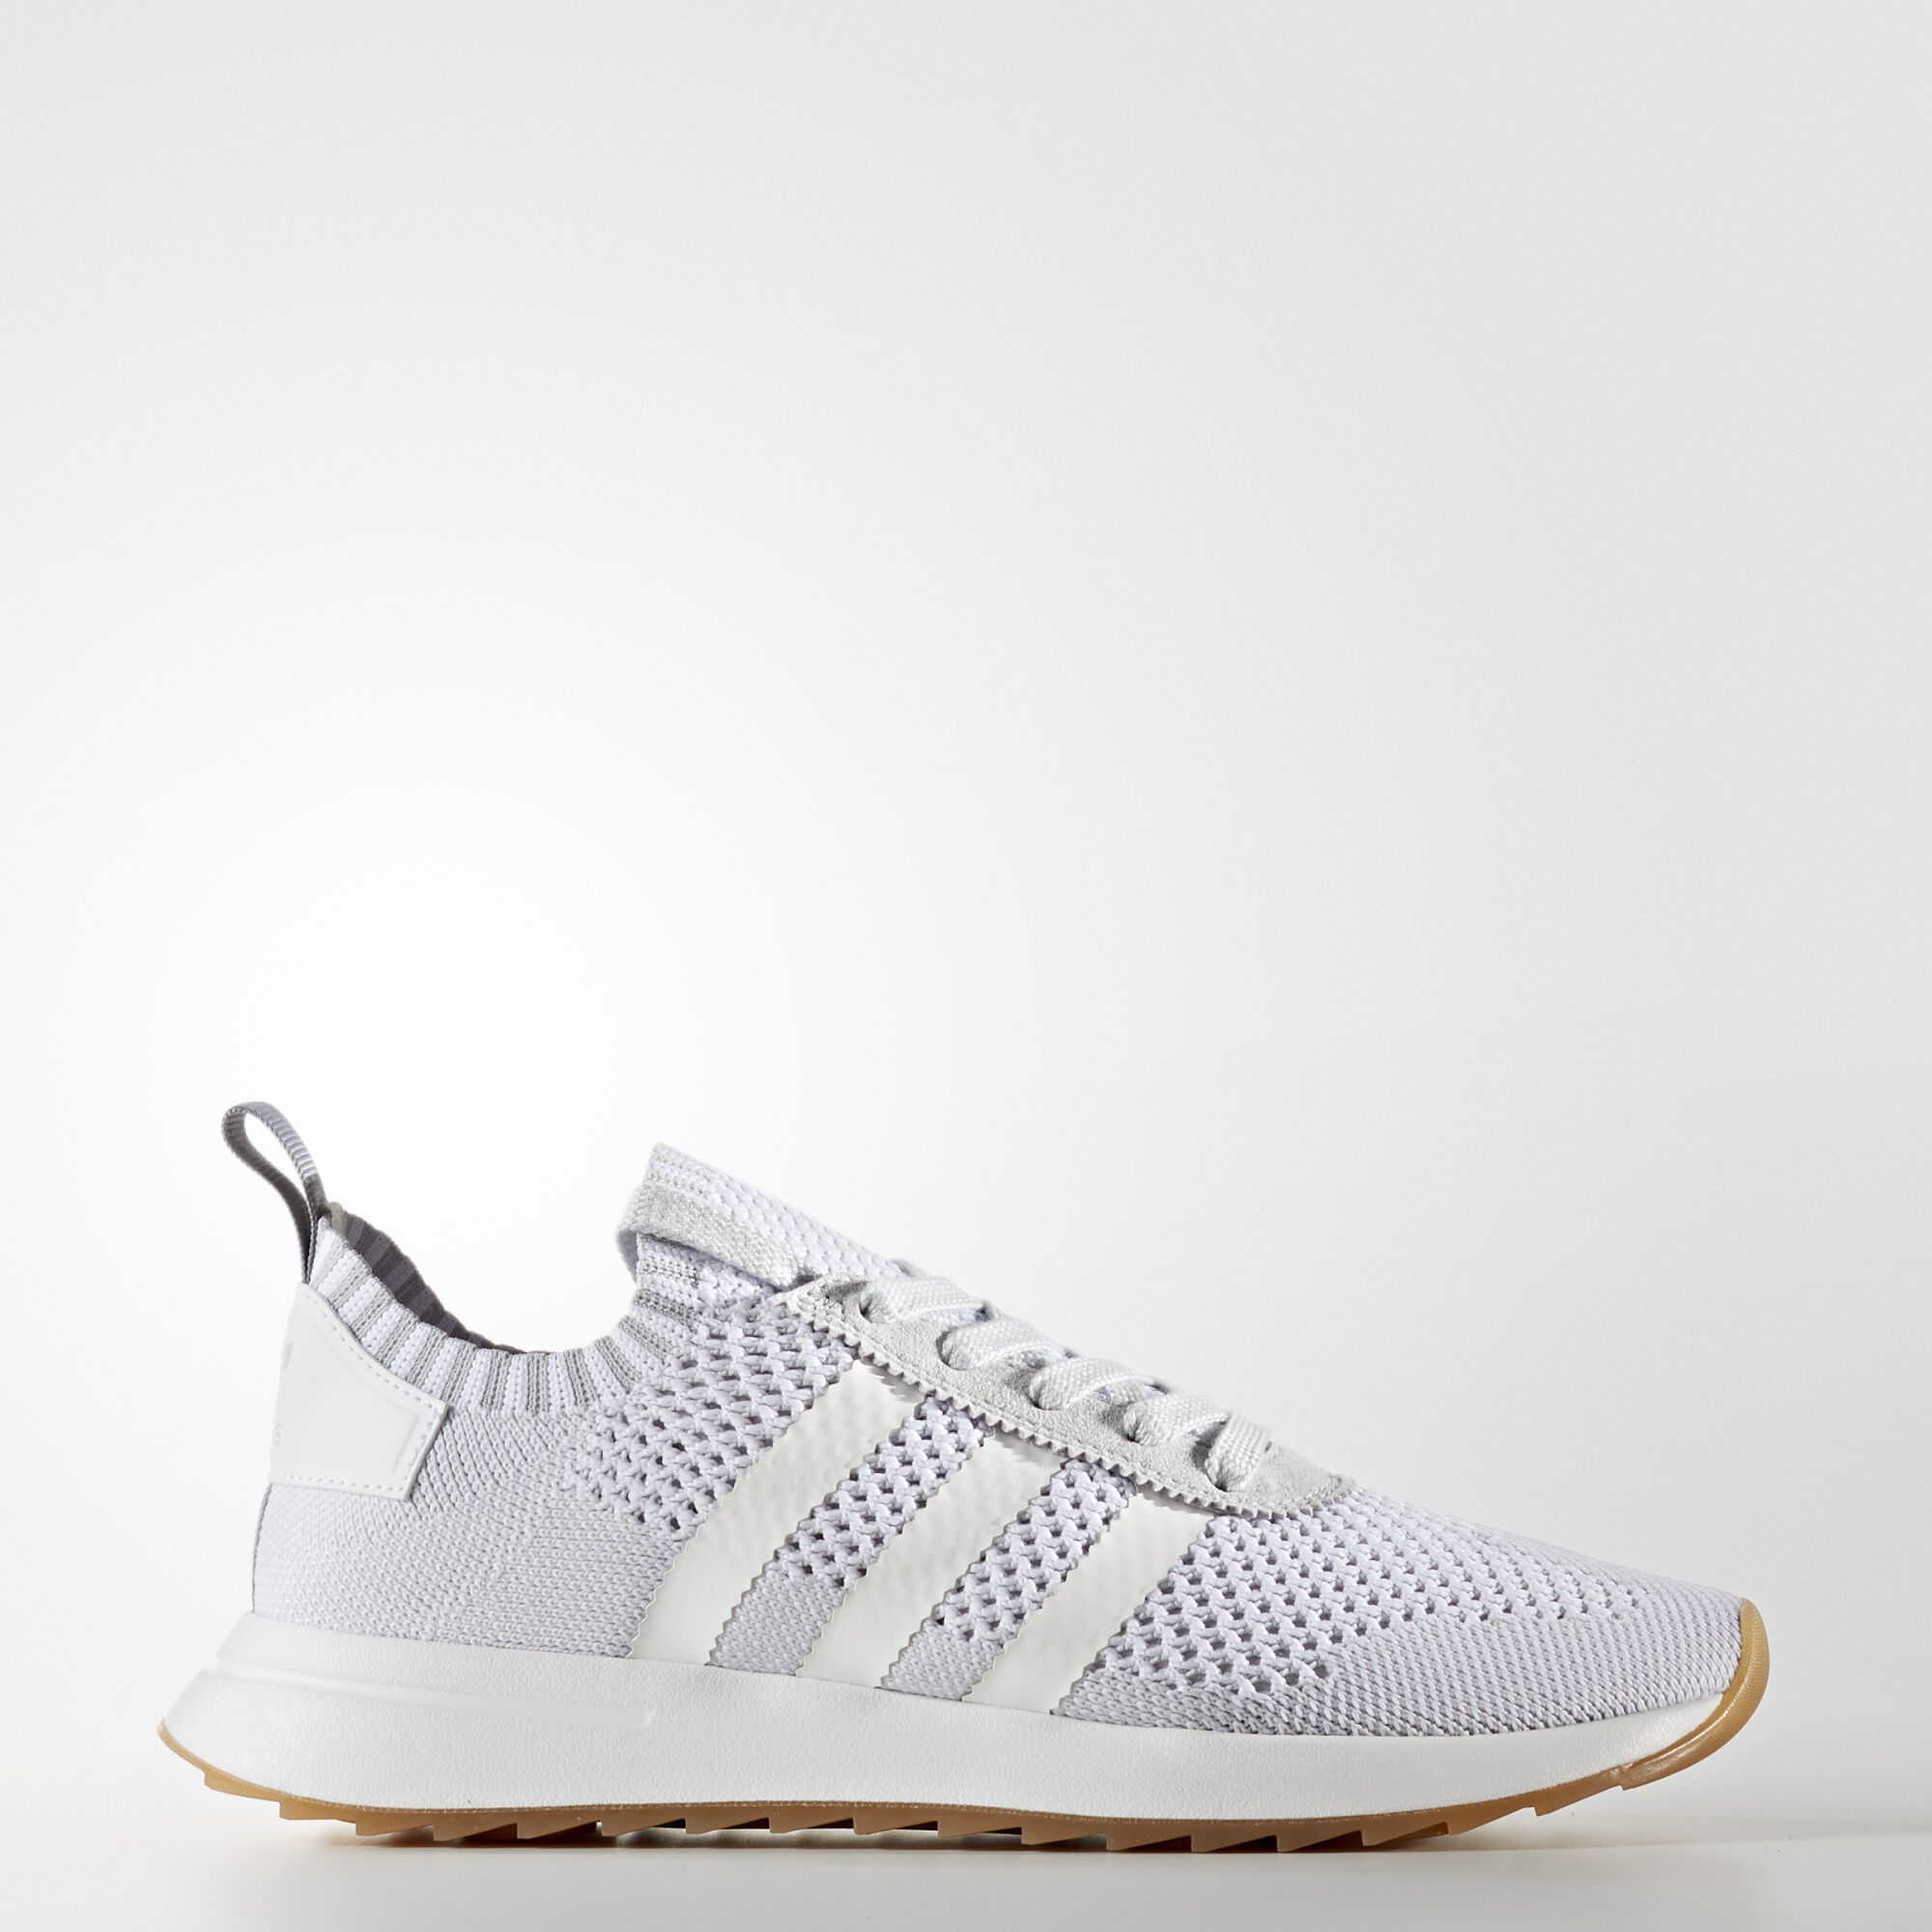 sports shoes 55e8e 33e2c ... adidas - Flashback Primeknit Shoes Running White Ftw   Running White    Clear Grey BY9099 ...